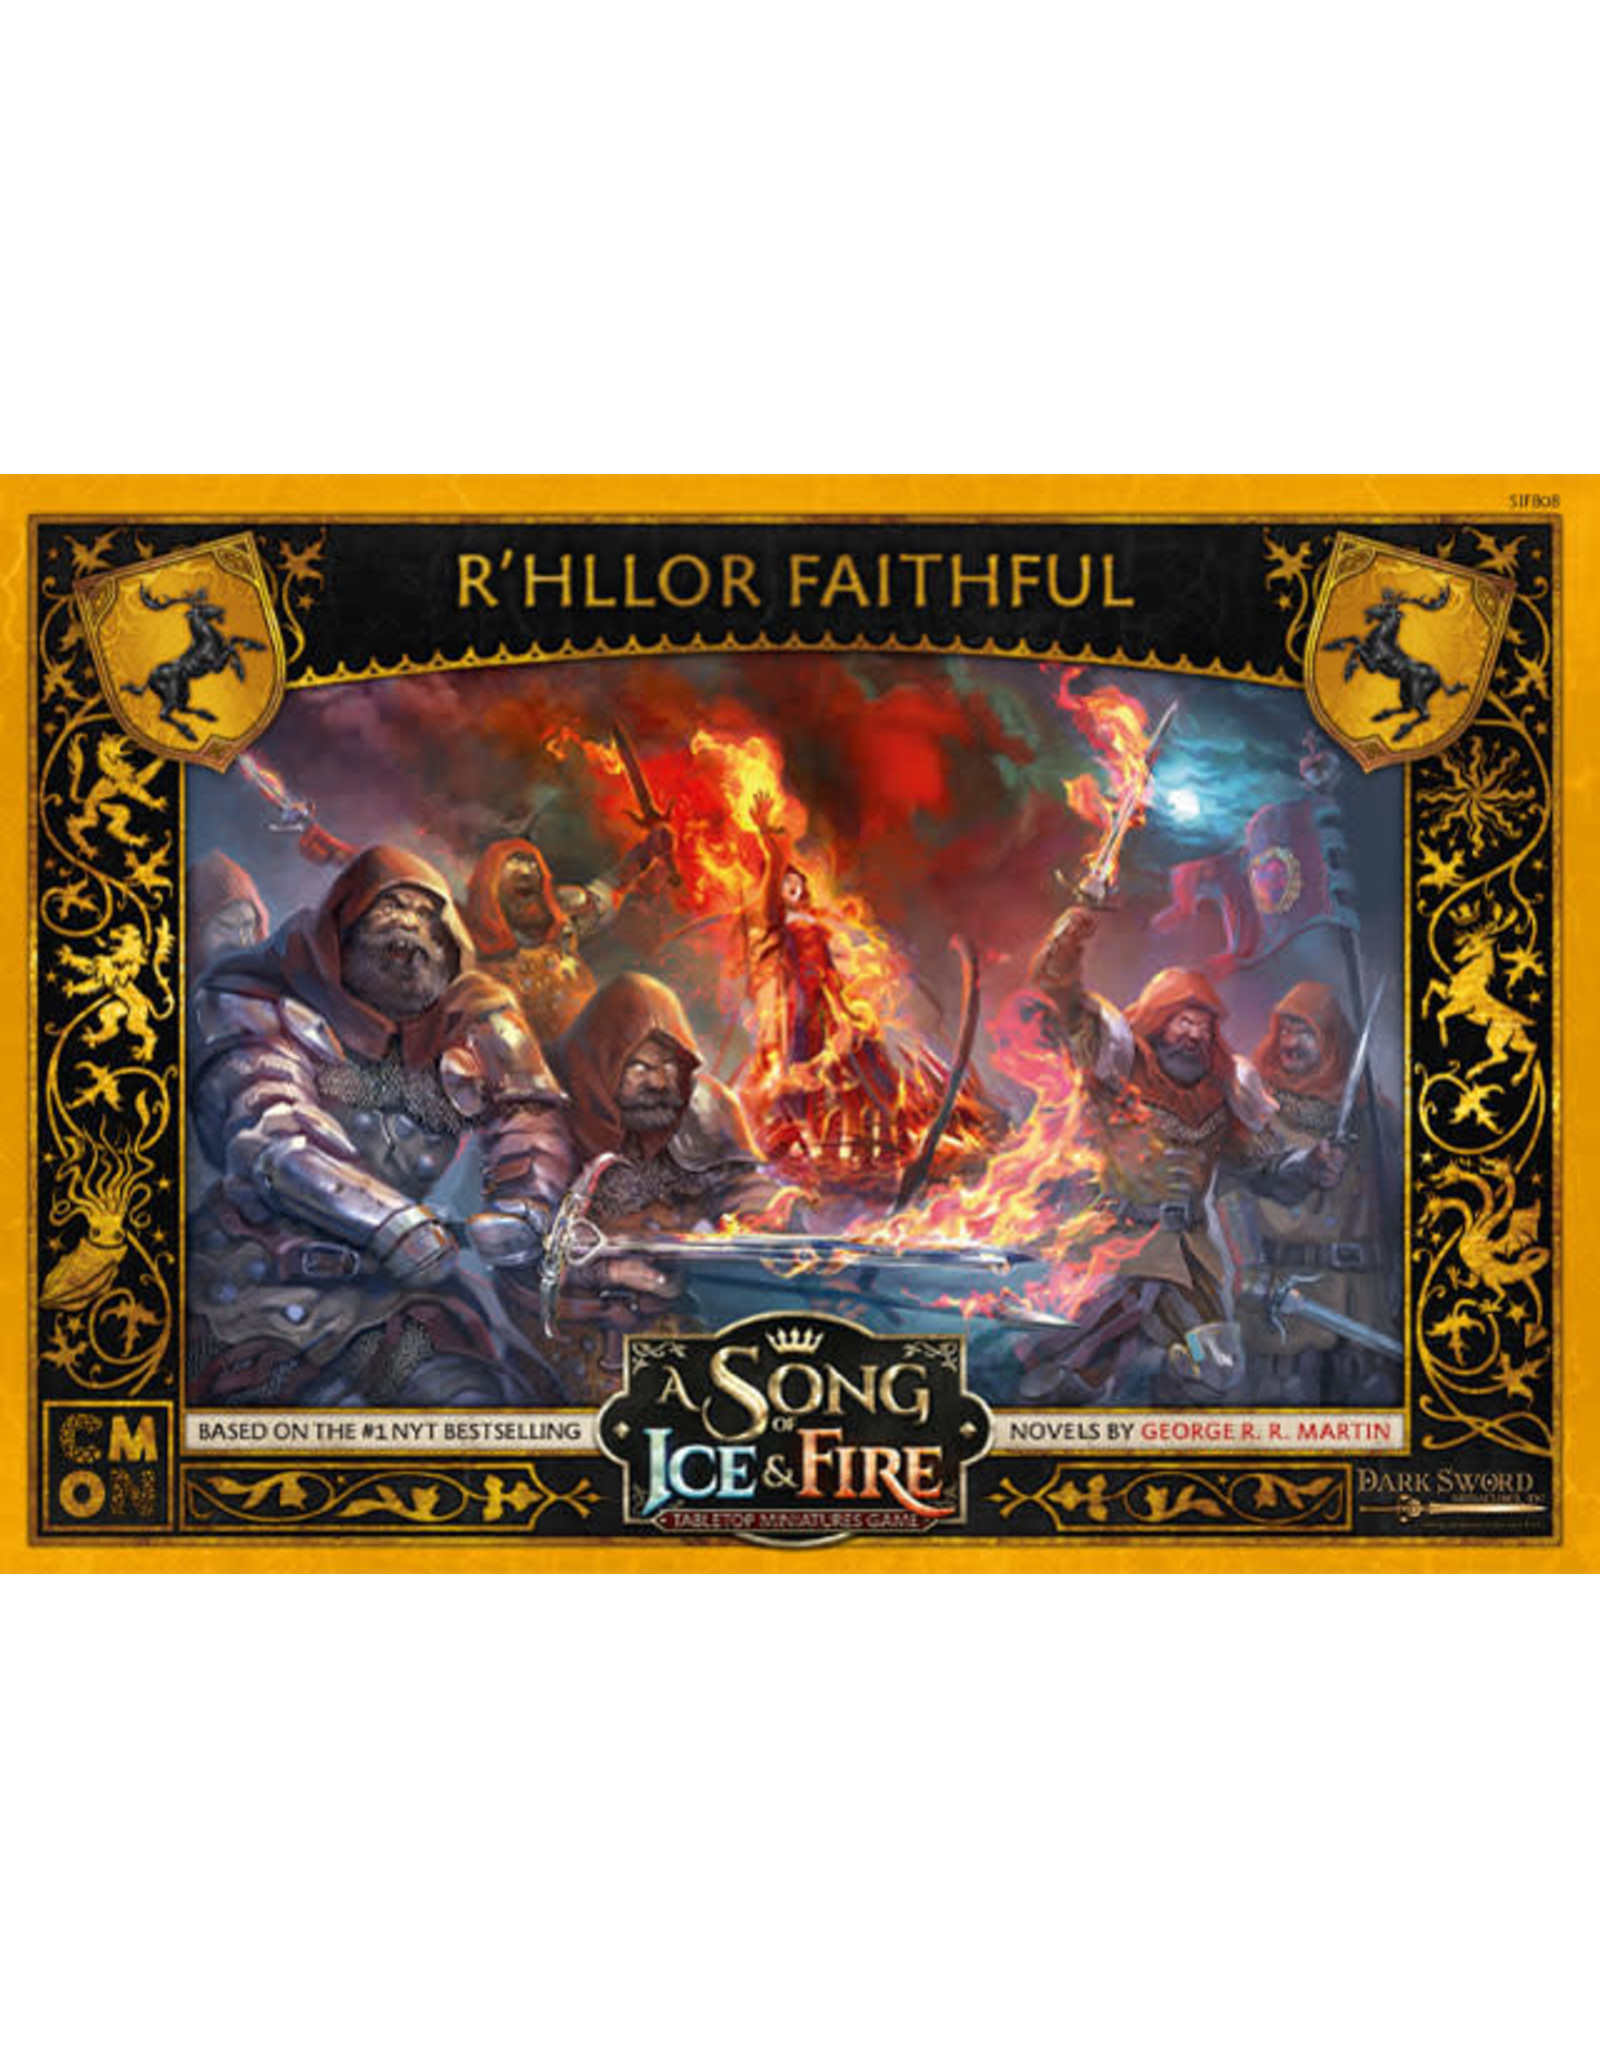 CMON A SONG OF ICE & FIRE: R'HLLOR FAITHFUL